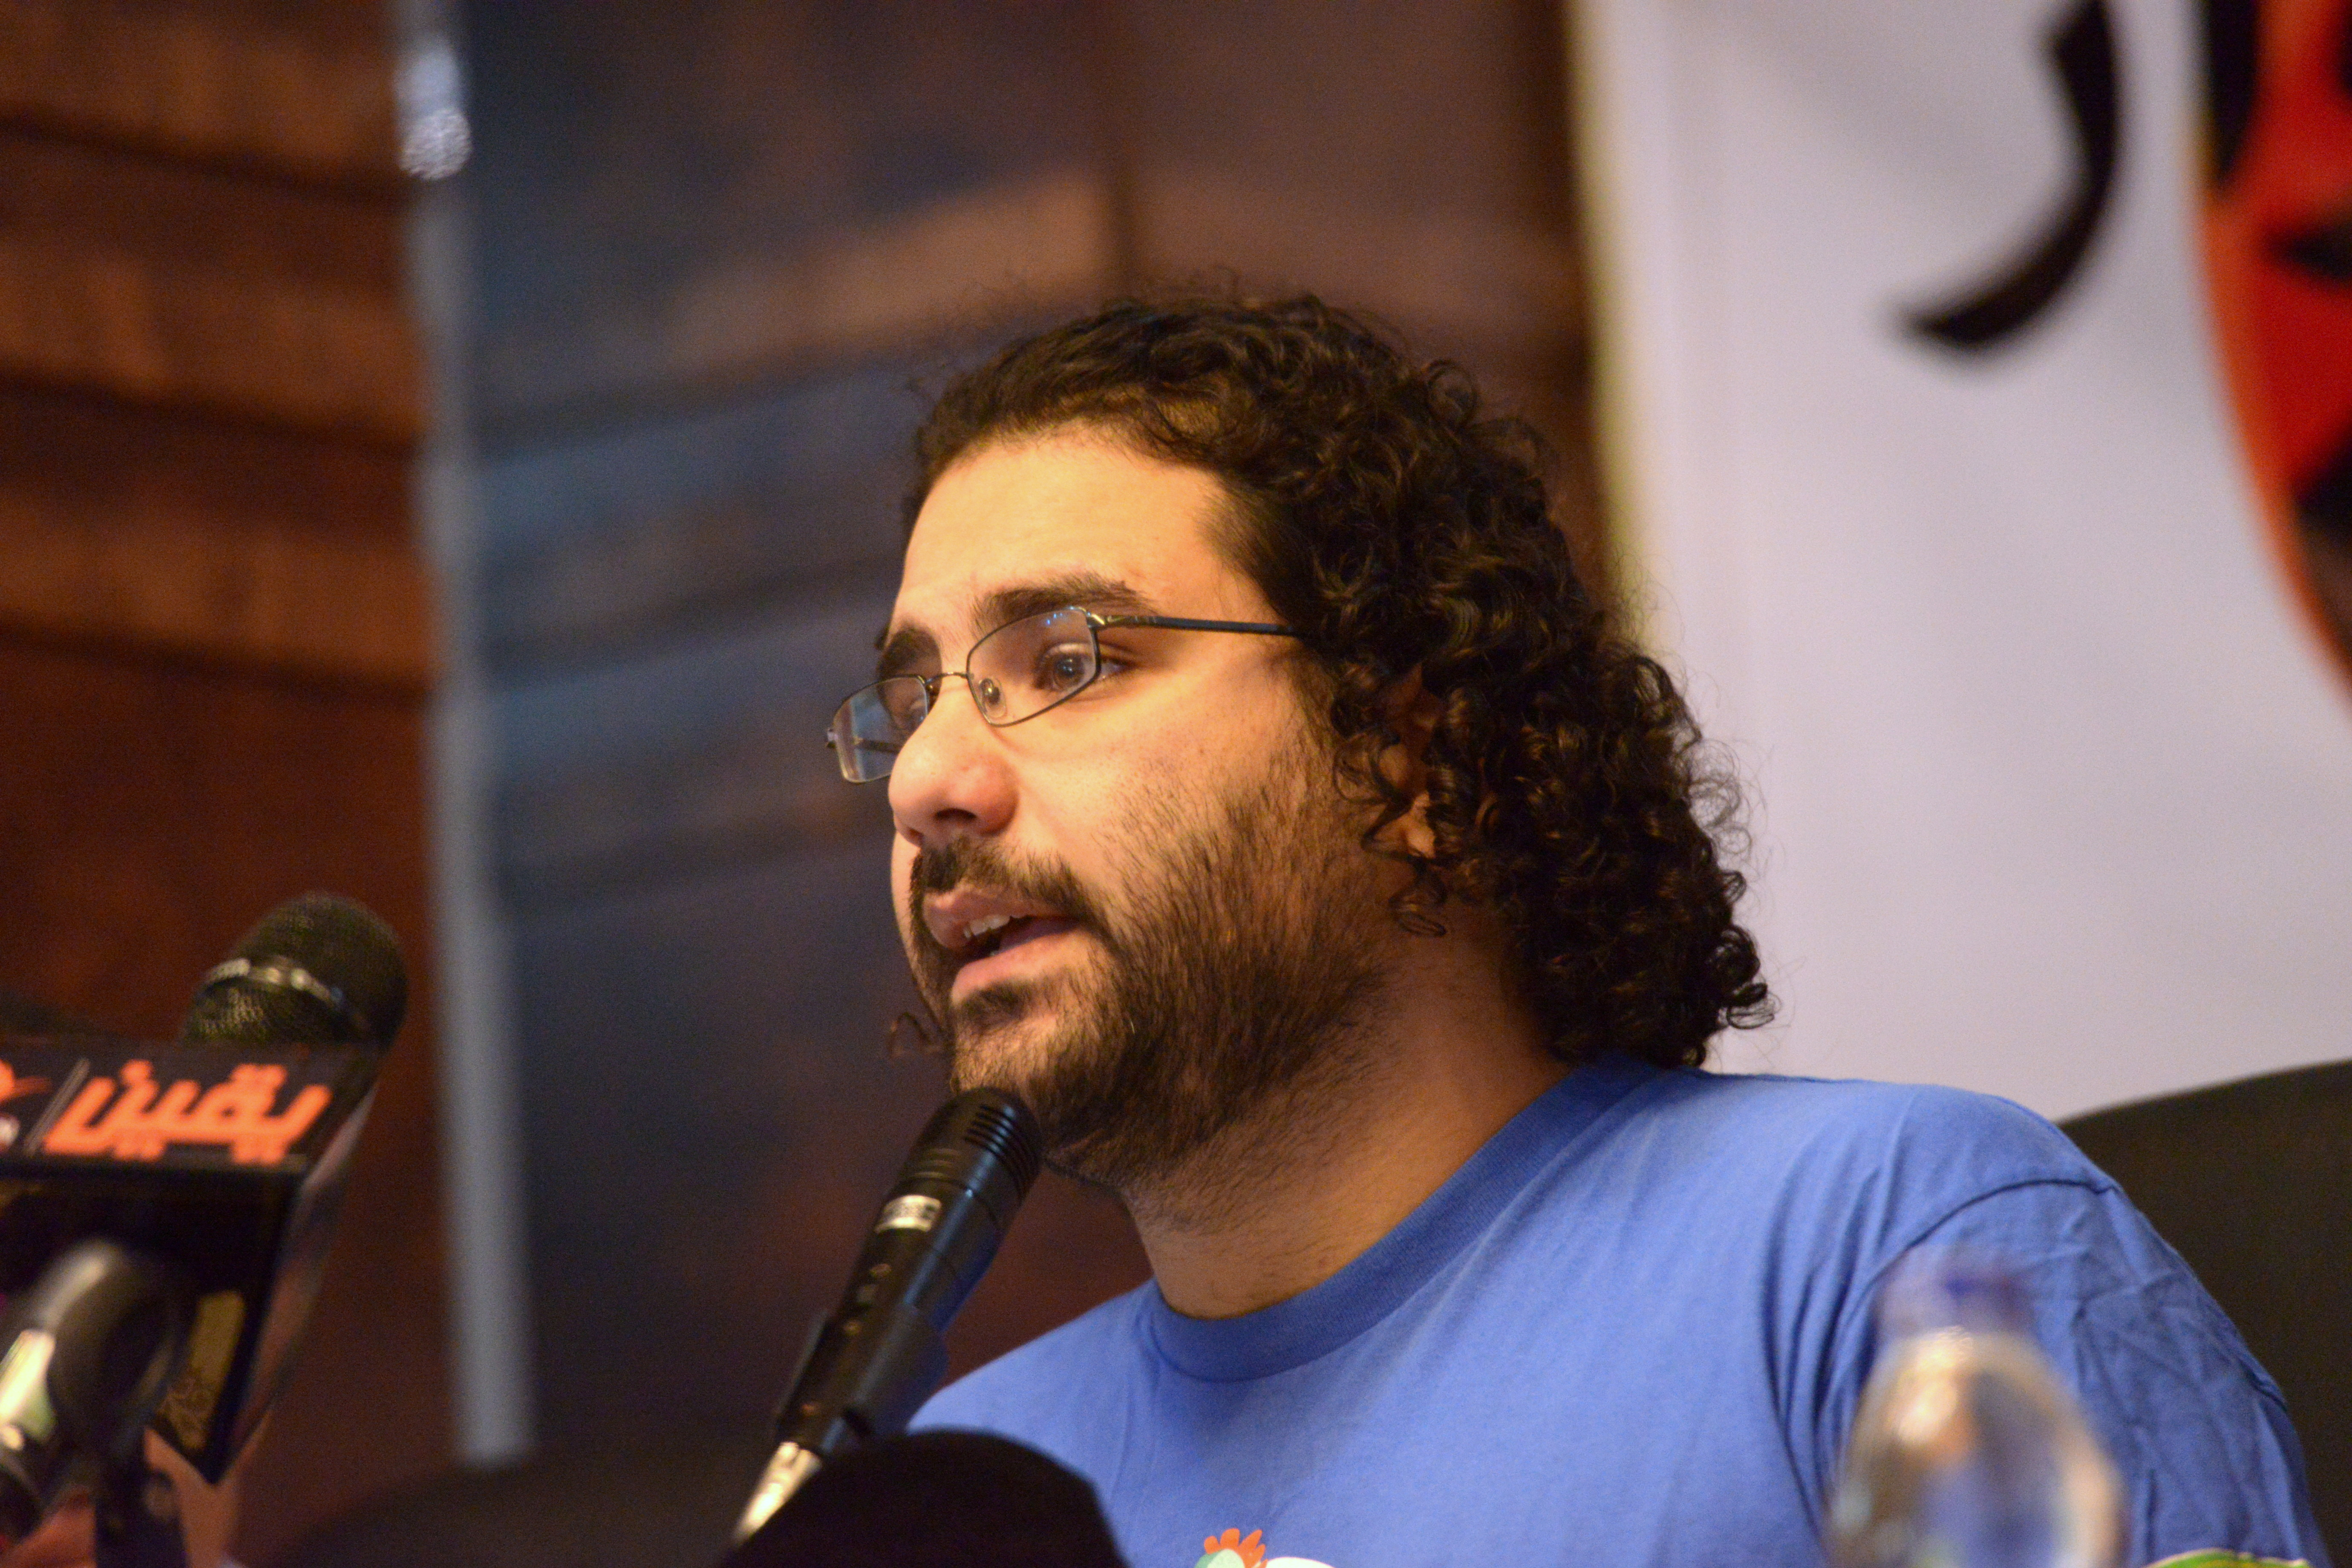 Alaa Abdel Fattah is accused of violating the Protest Law during the No Military Trial protest organised in front of Al-Shura Council on 26 November, 2013 (Photo By Aaron T.Rose\DNE File)